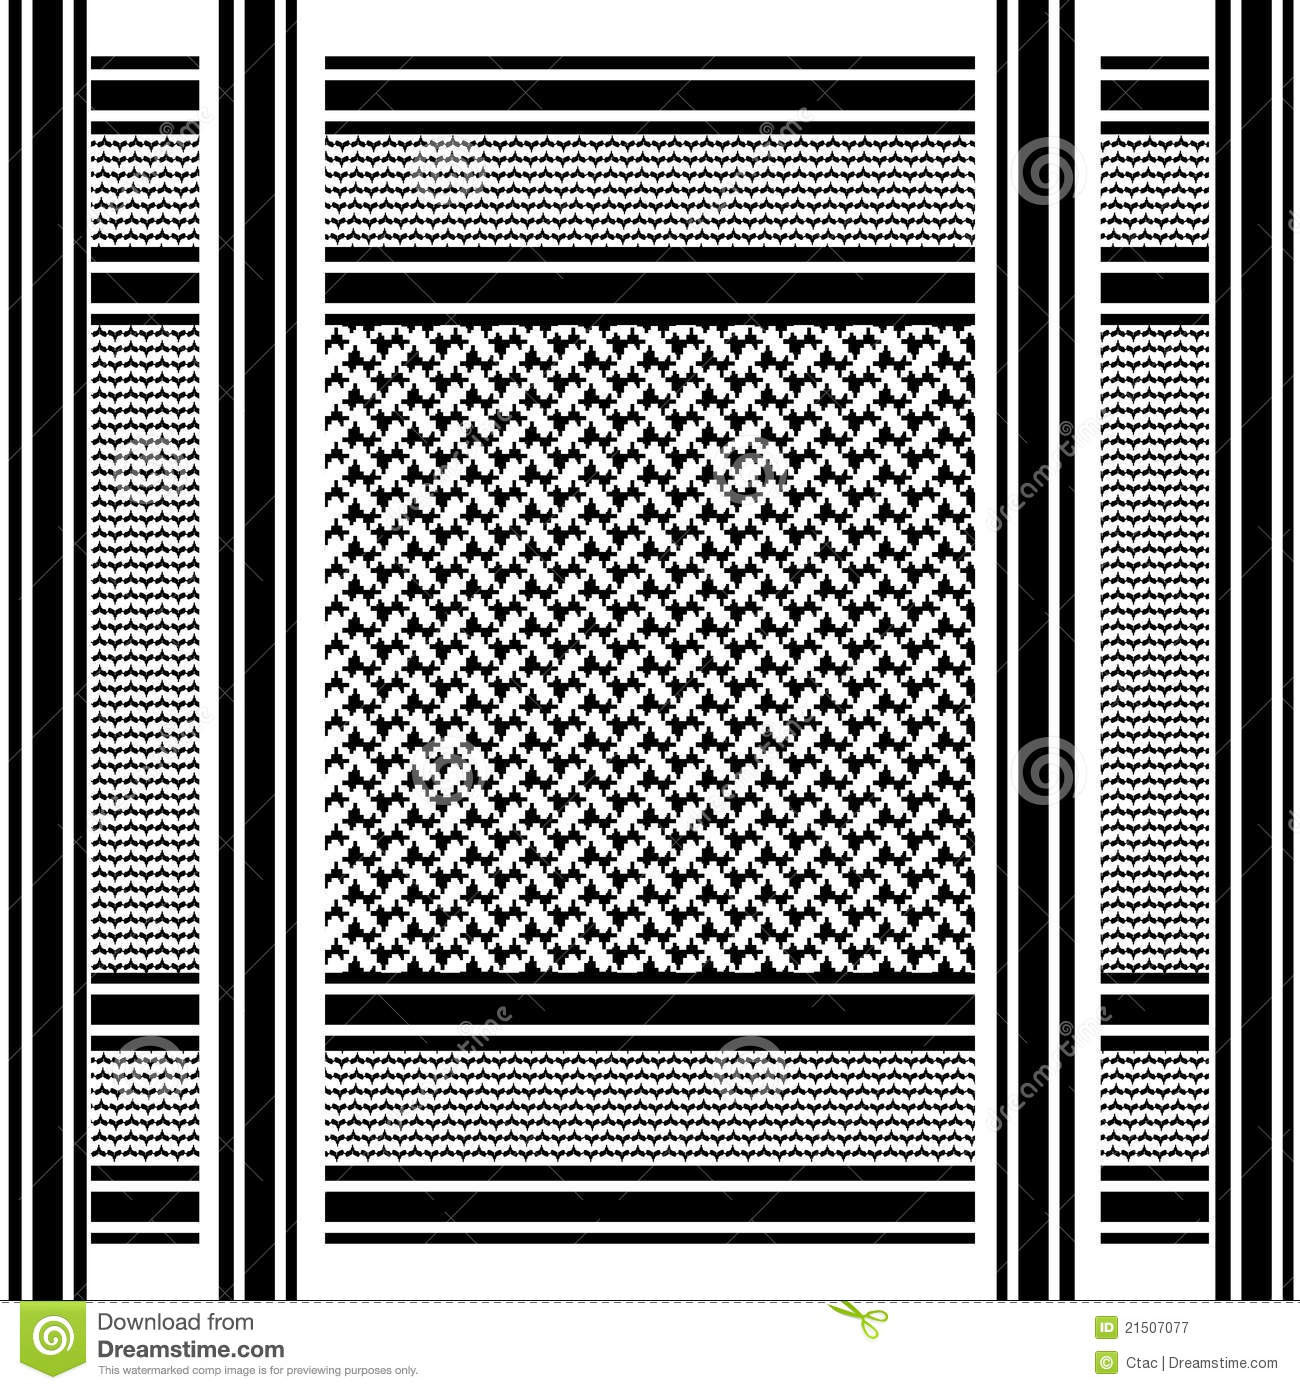 Black And White Geometric Wallpaper Arab Shemagh Scarf Royalty Free Stock Photography Image